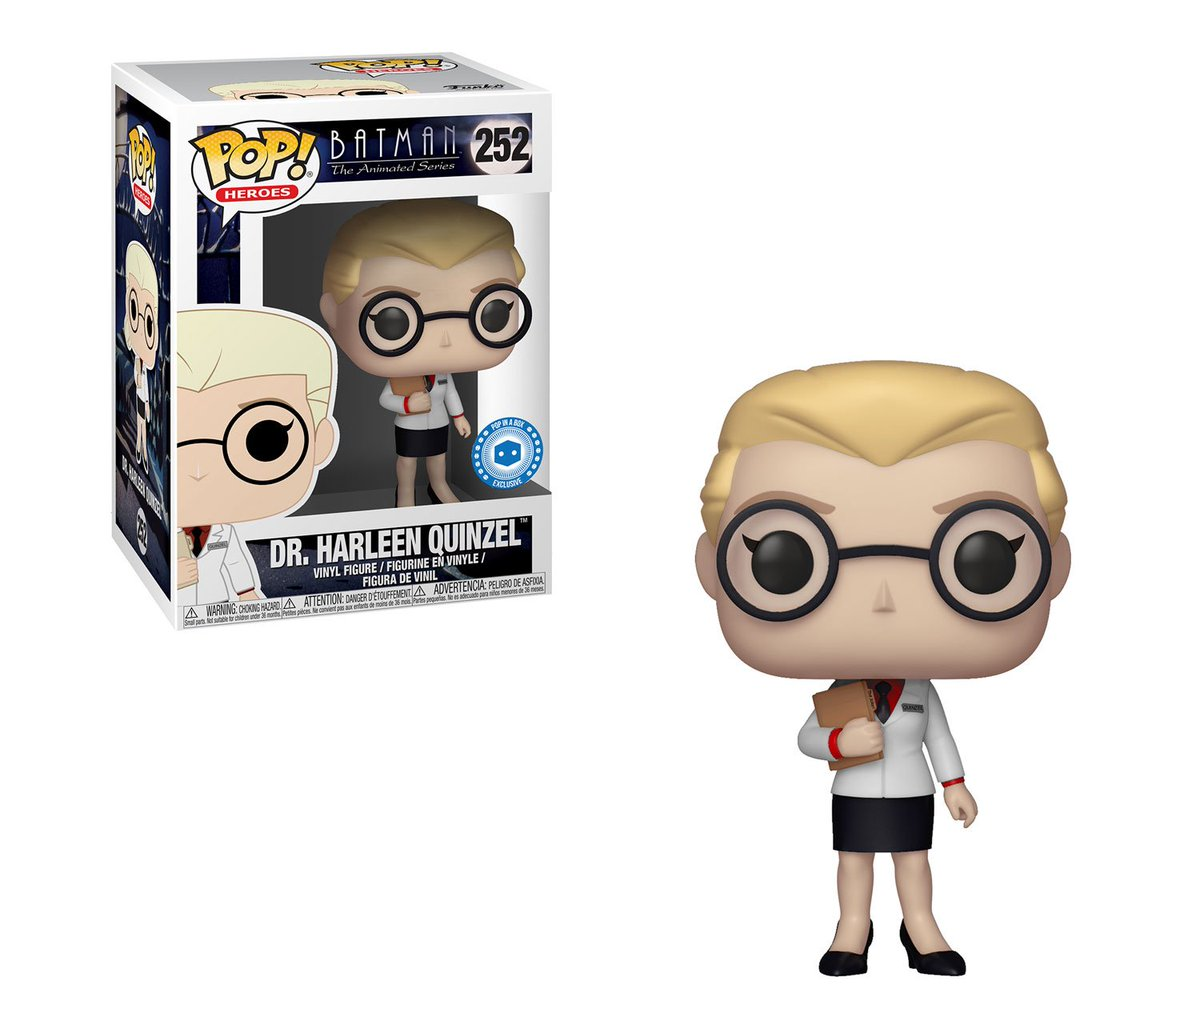 RT & follow @OriginalFunko for a chance to WIN a @PopInABox exclusive Dr. Harleen Quinzel Pop! #BTAS